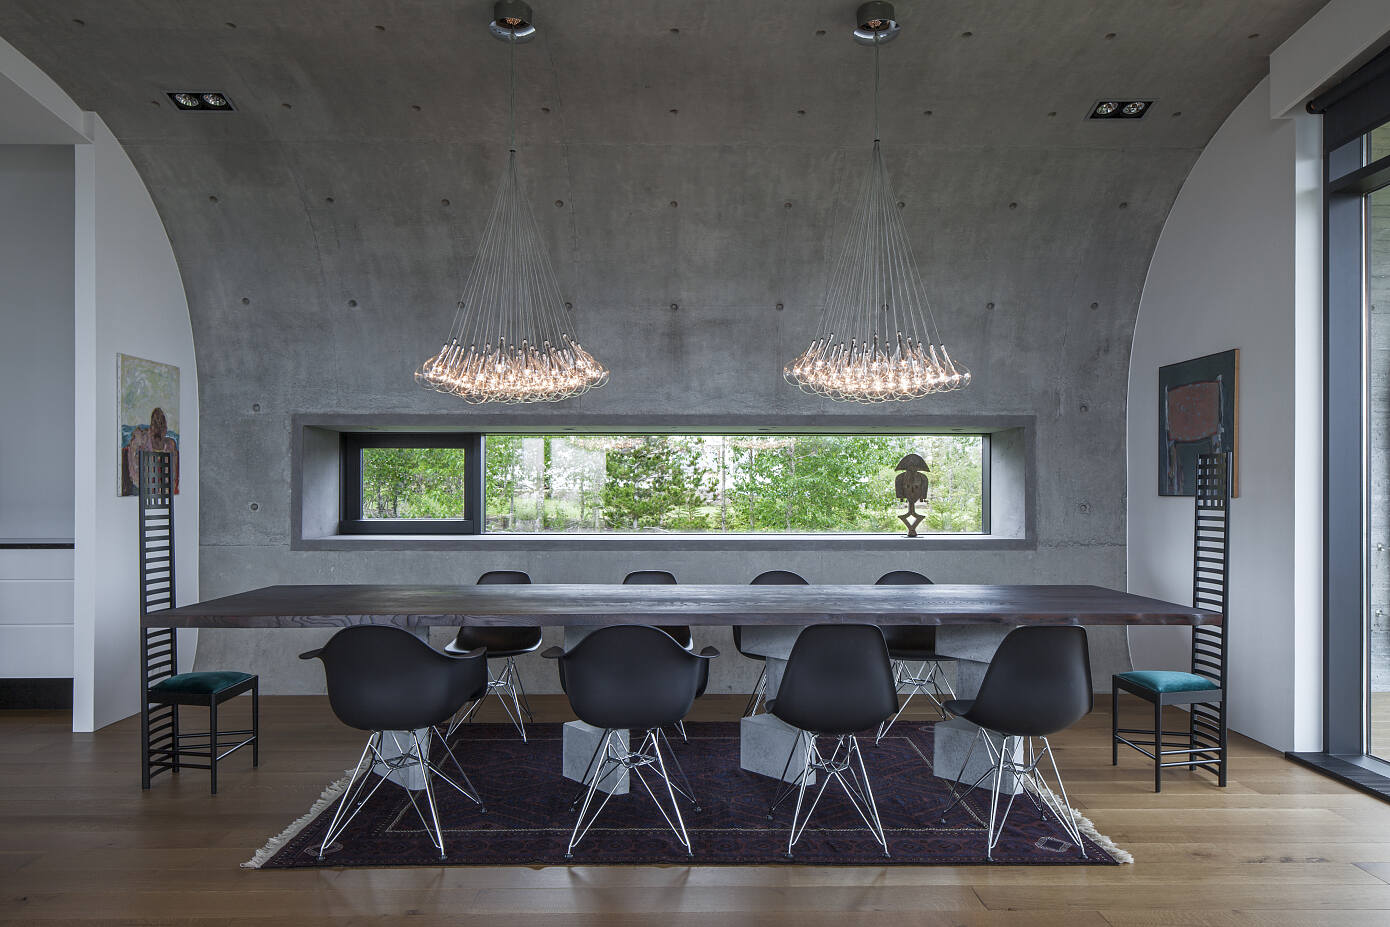 House of Shapes by Eon Architecture